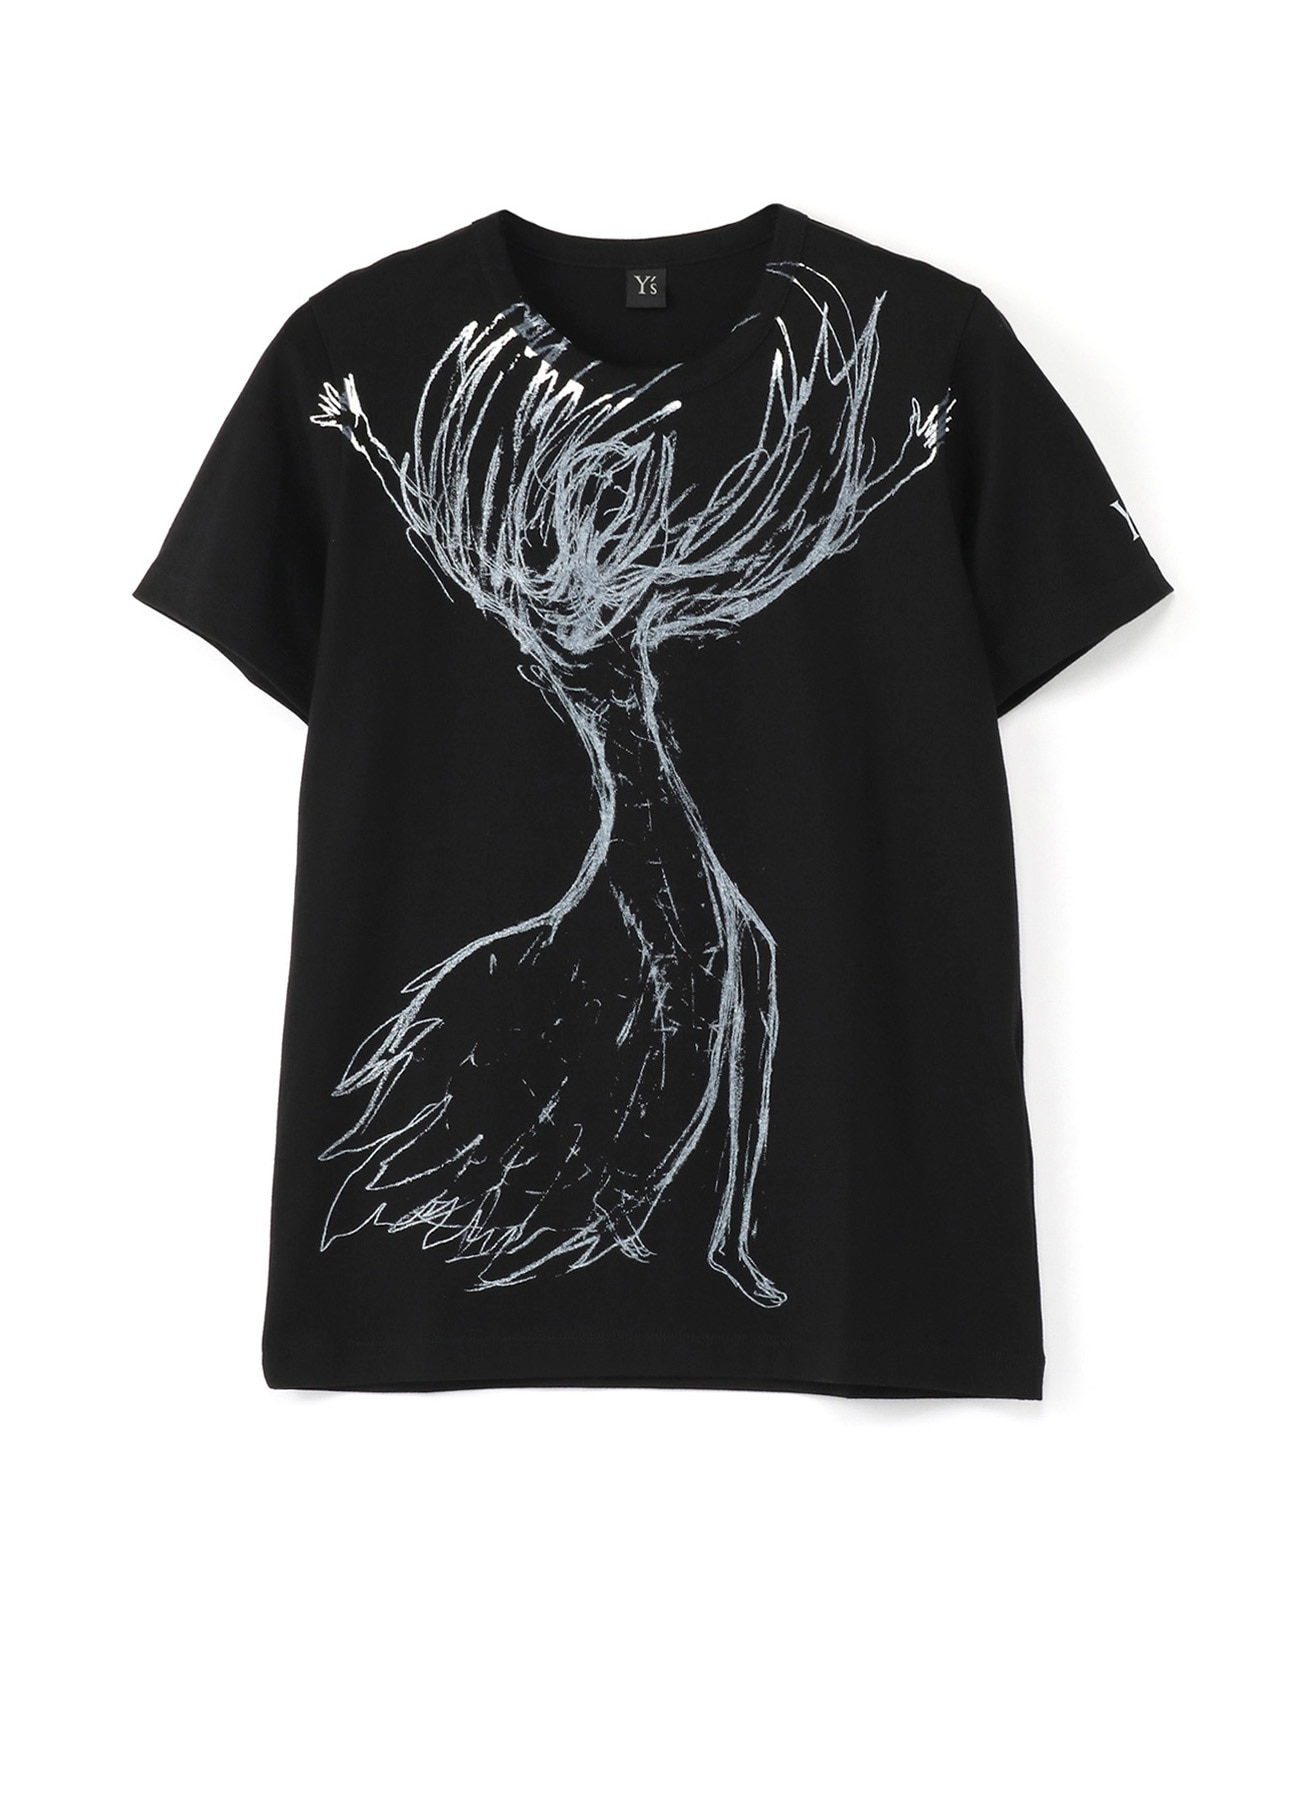 Drawing Graphic T-Shirt Woman with Both Arms Raised